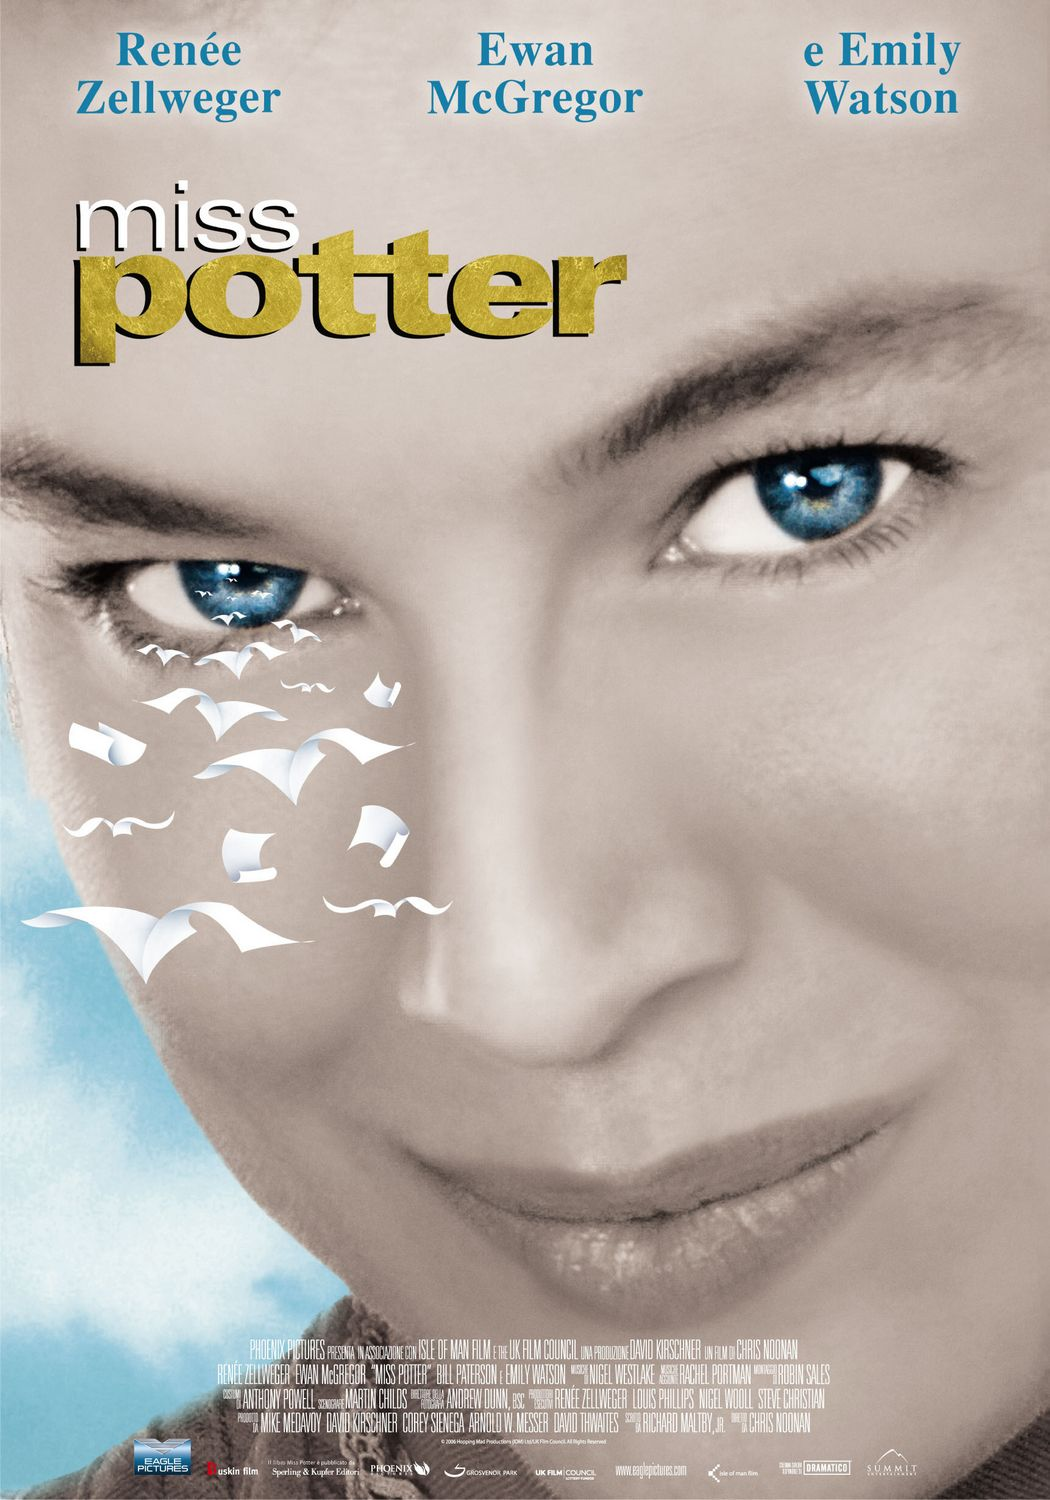 Miss Potter film poster